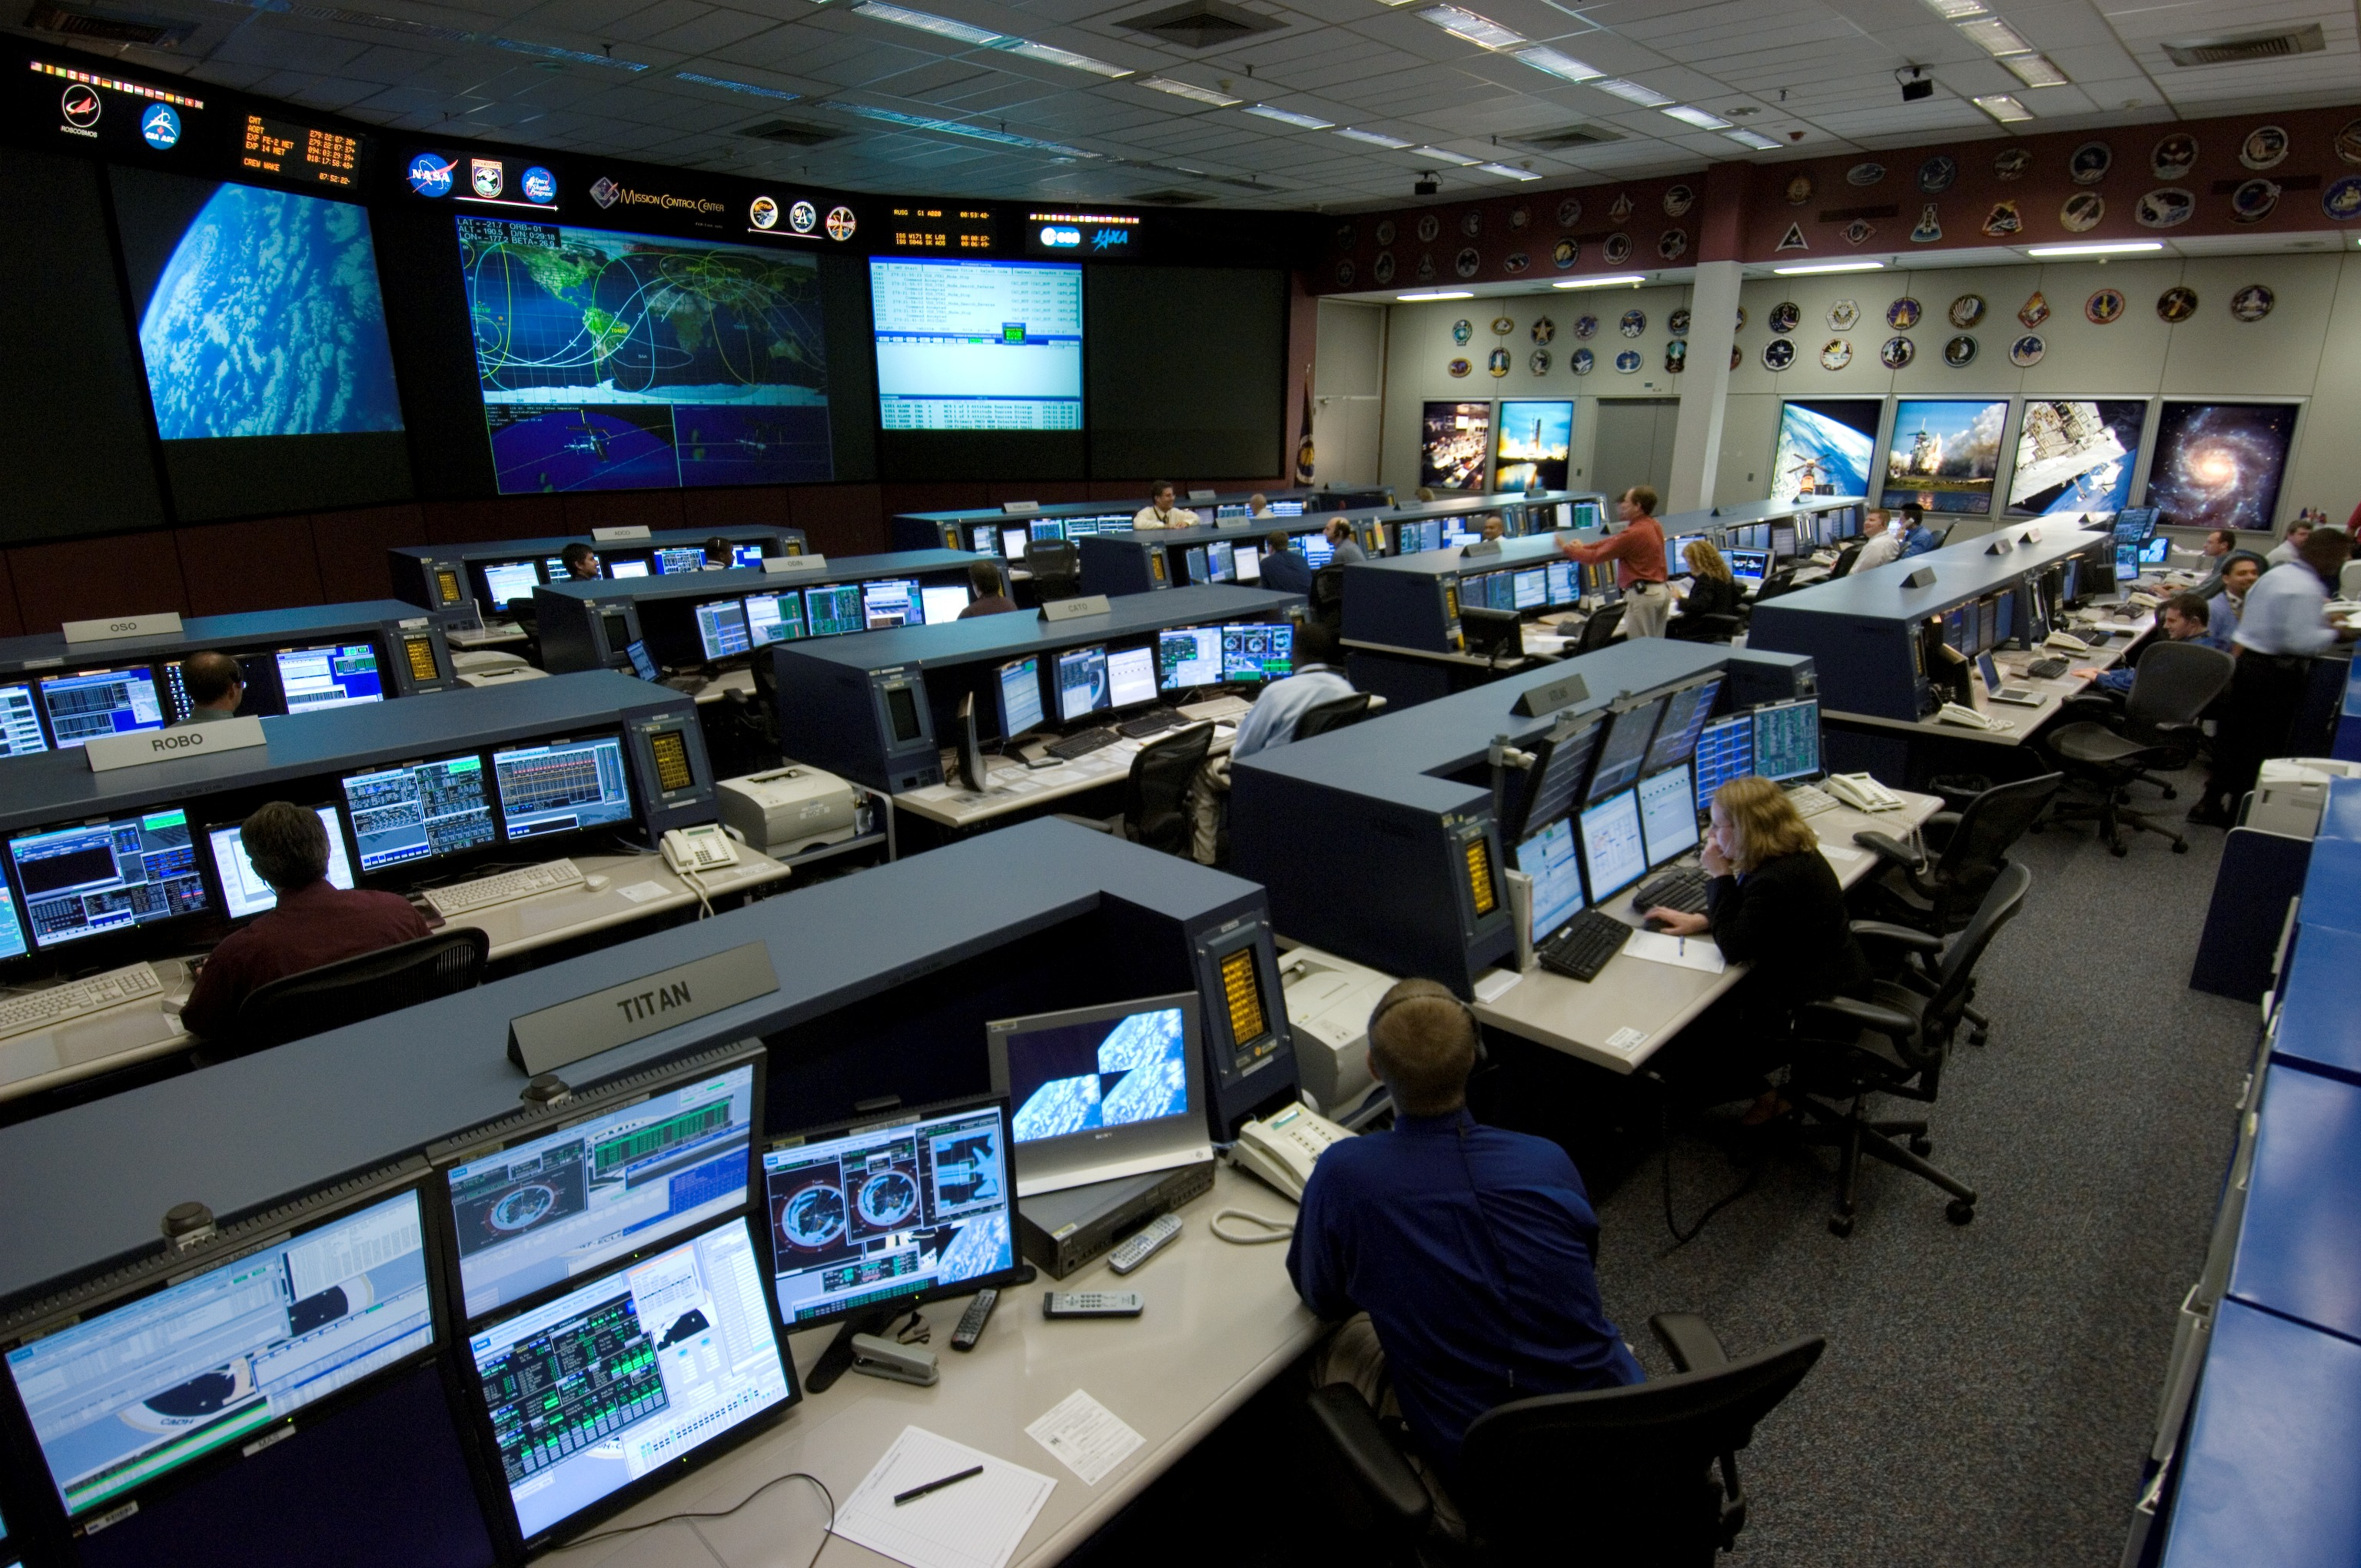 Iss Work And Meeting Room